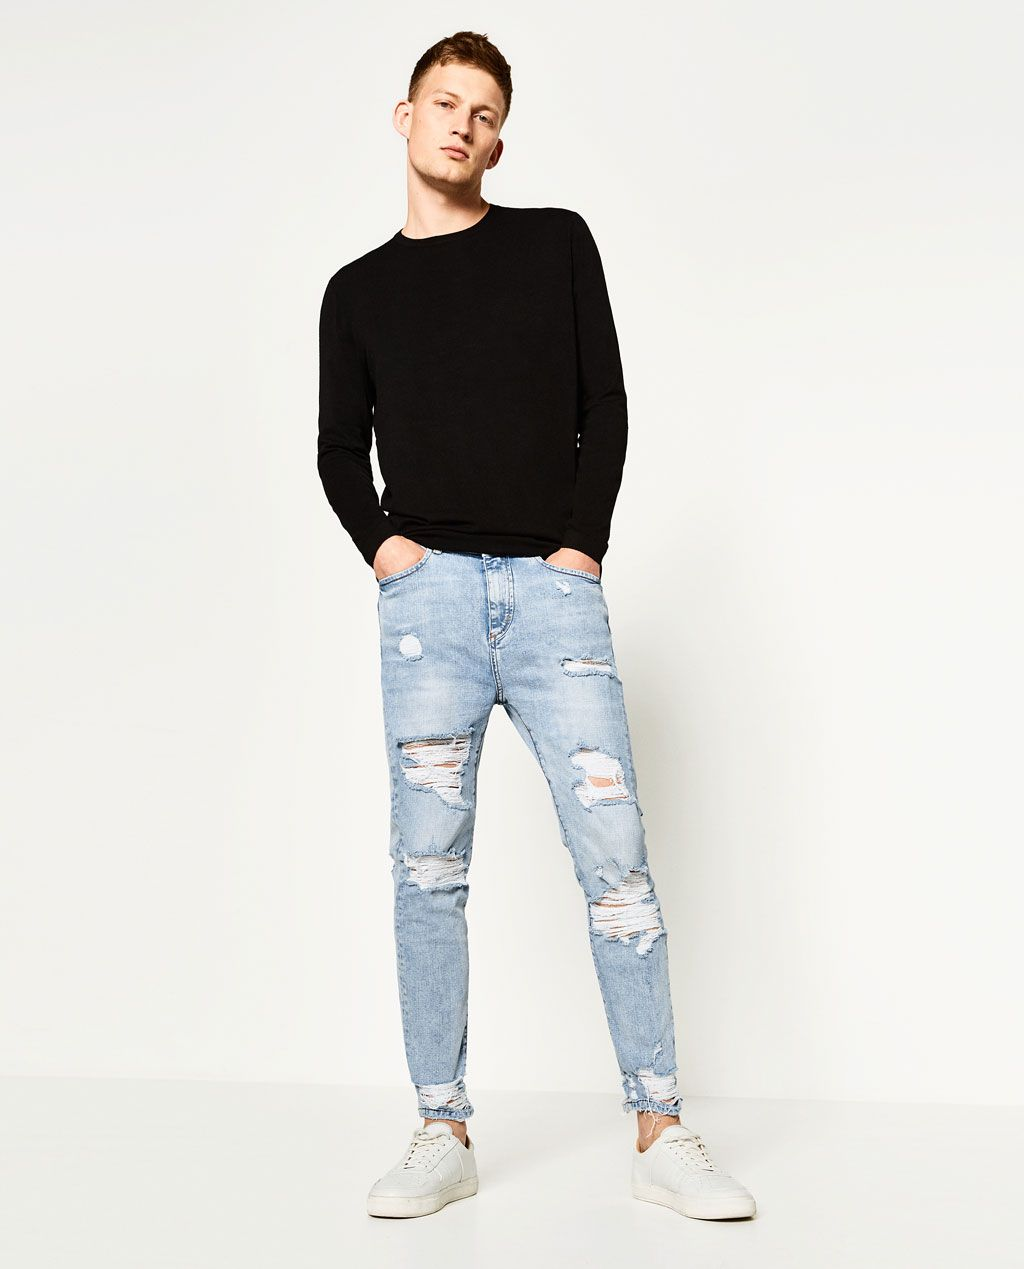 7801169e29 JEANS-TROUSERS-SALE-MAN